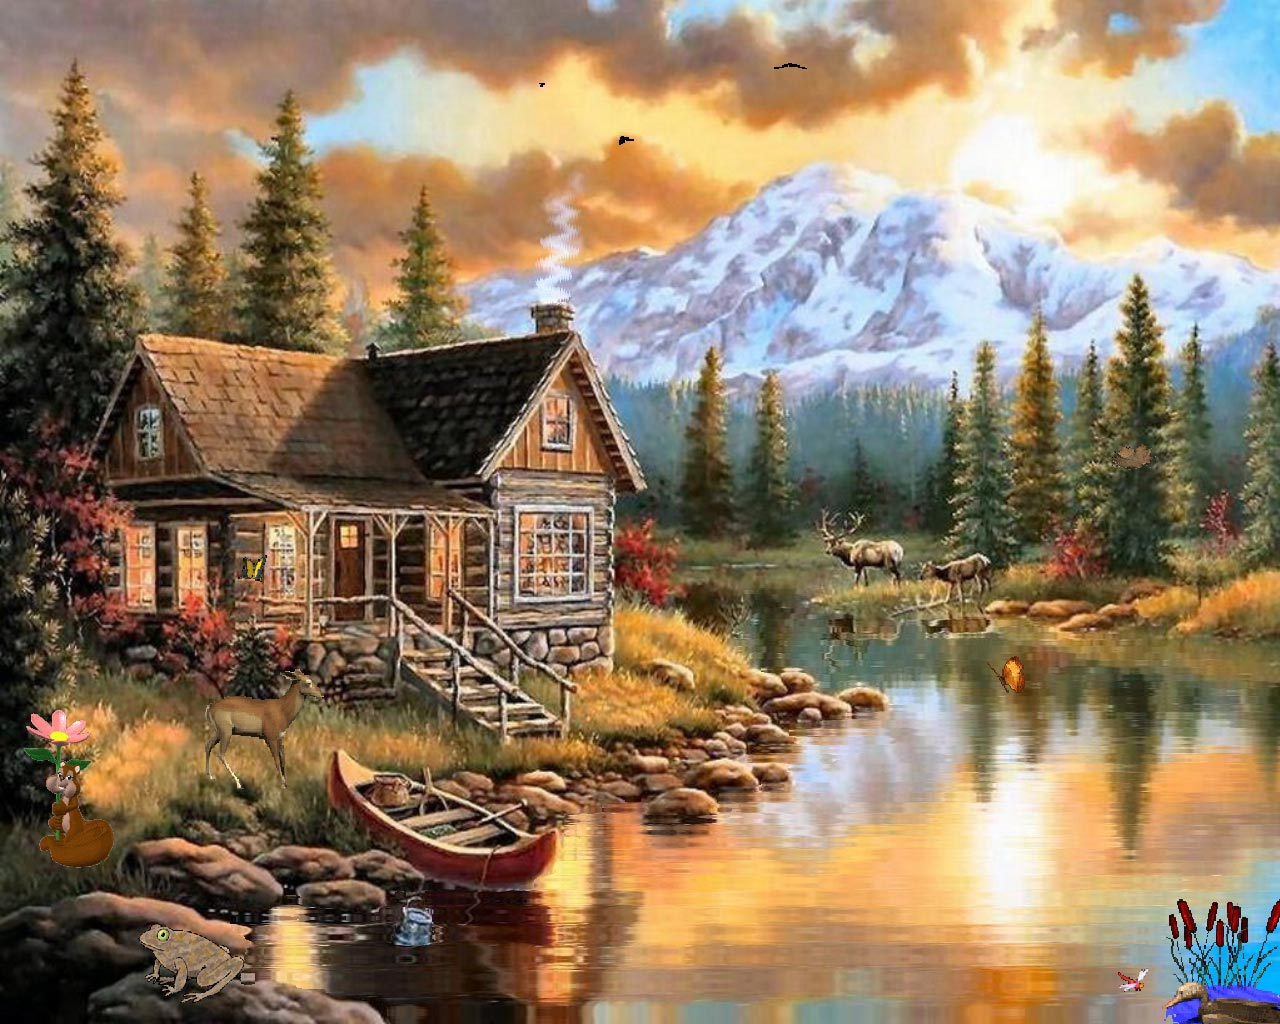 Drawn wallpaper scenery And Syllabus Wallpapers nature cabin